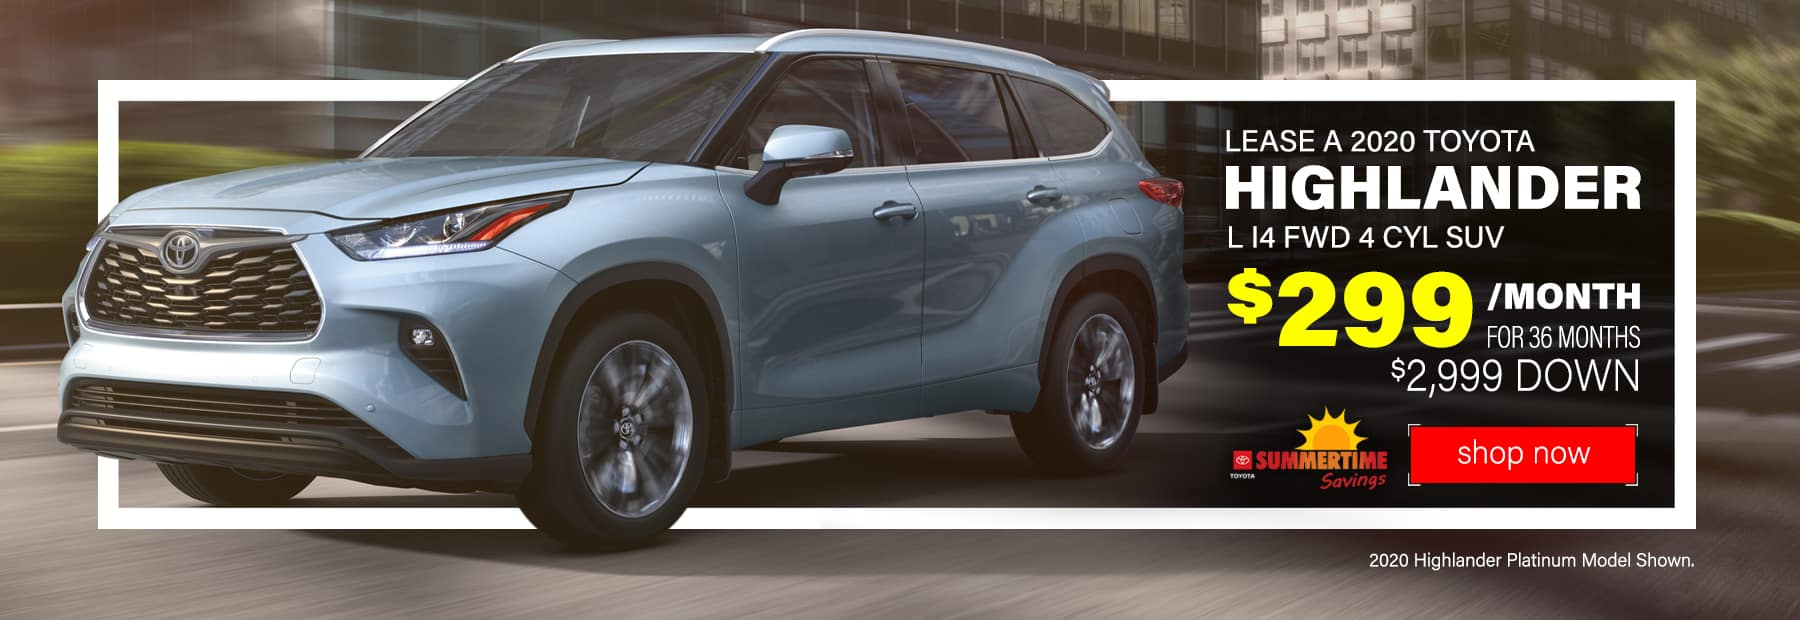 Lease a 2020 Toyota Highlander L I4 FWD 4 CYL SUV for $299/mo. for 36 mos. with $2,999 down